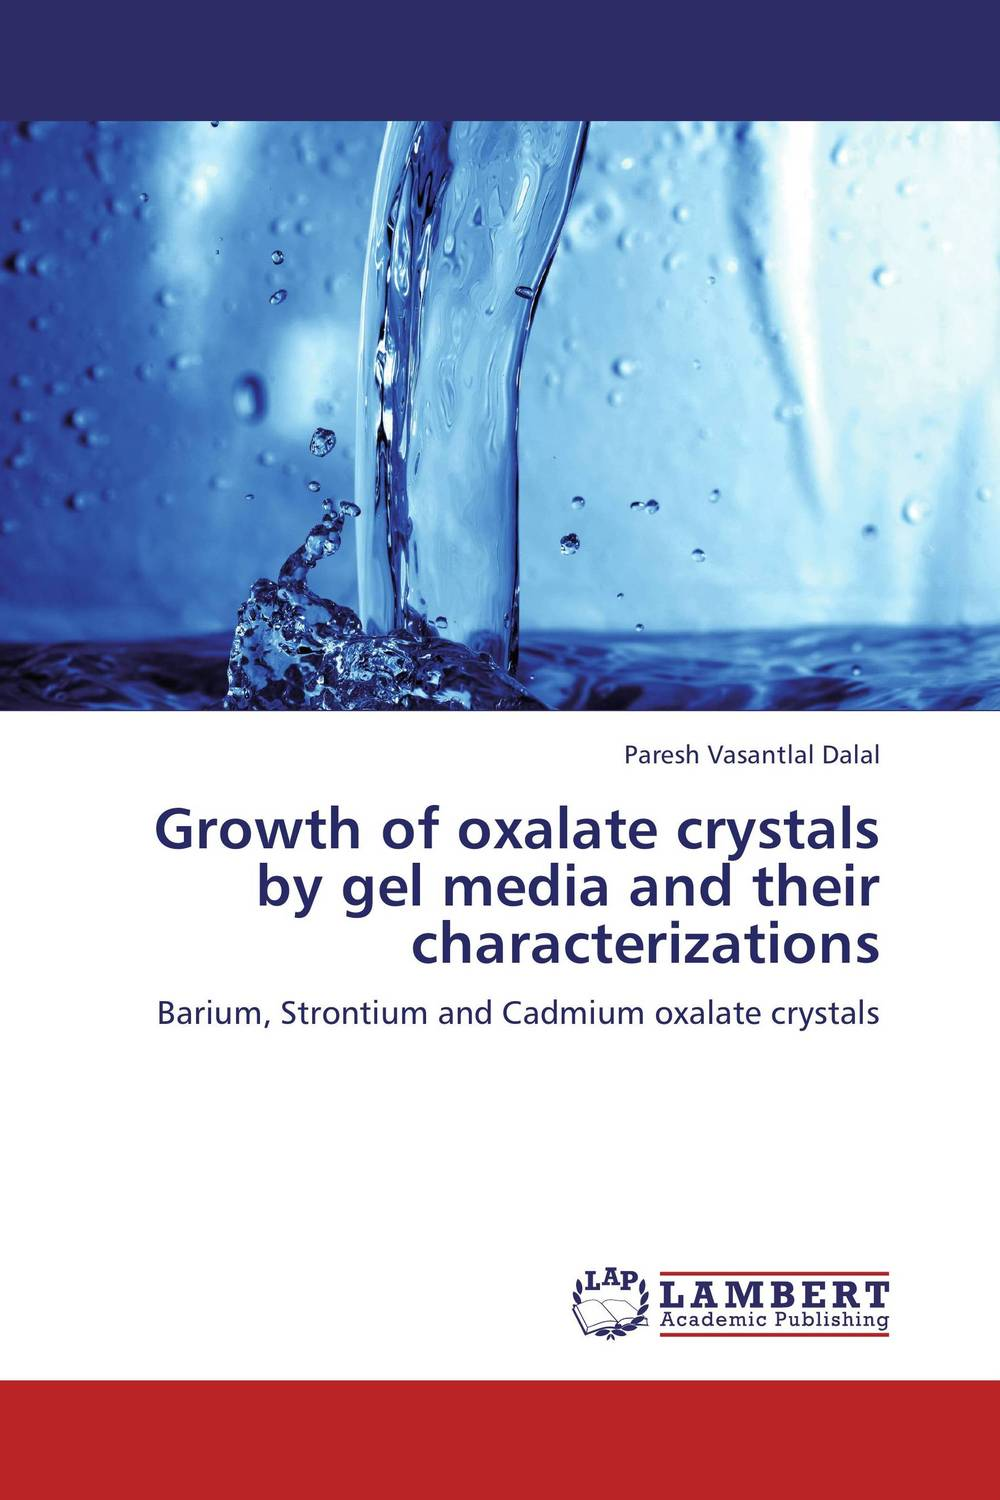 Growth of oxalate crystals by gel media and their characterizations growth and characterization of certain benzoate and sulfonate crystals